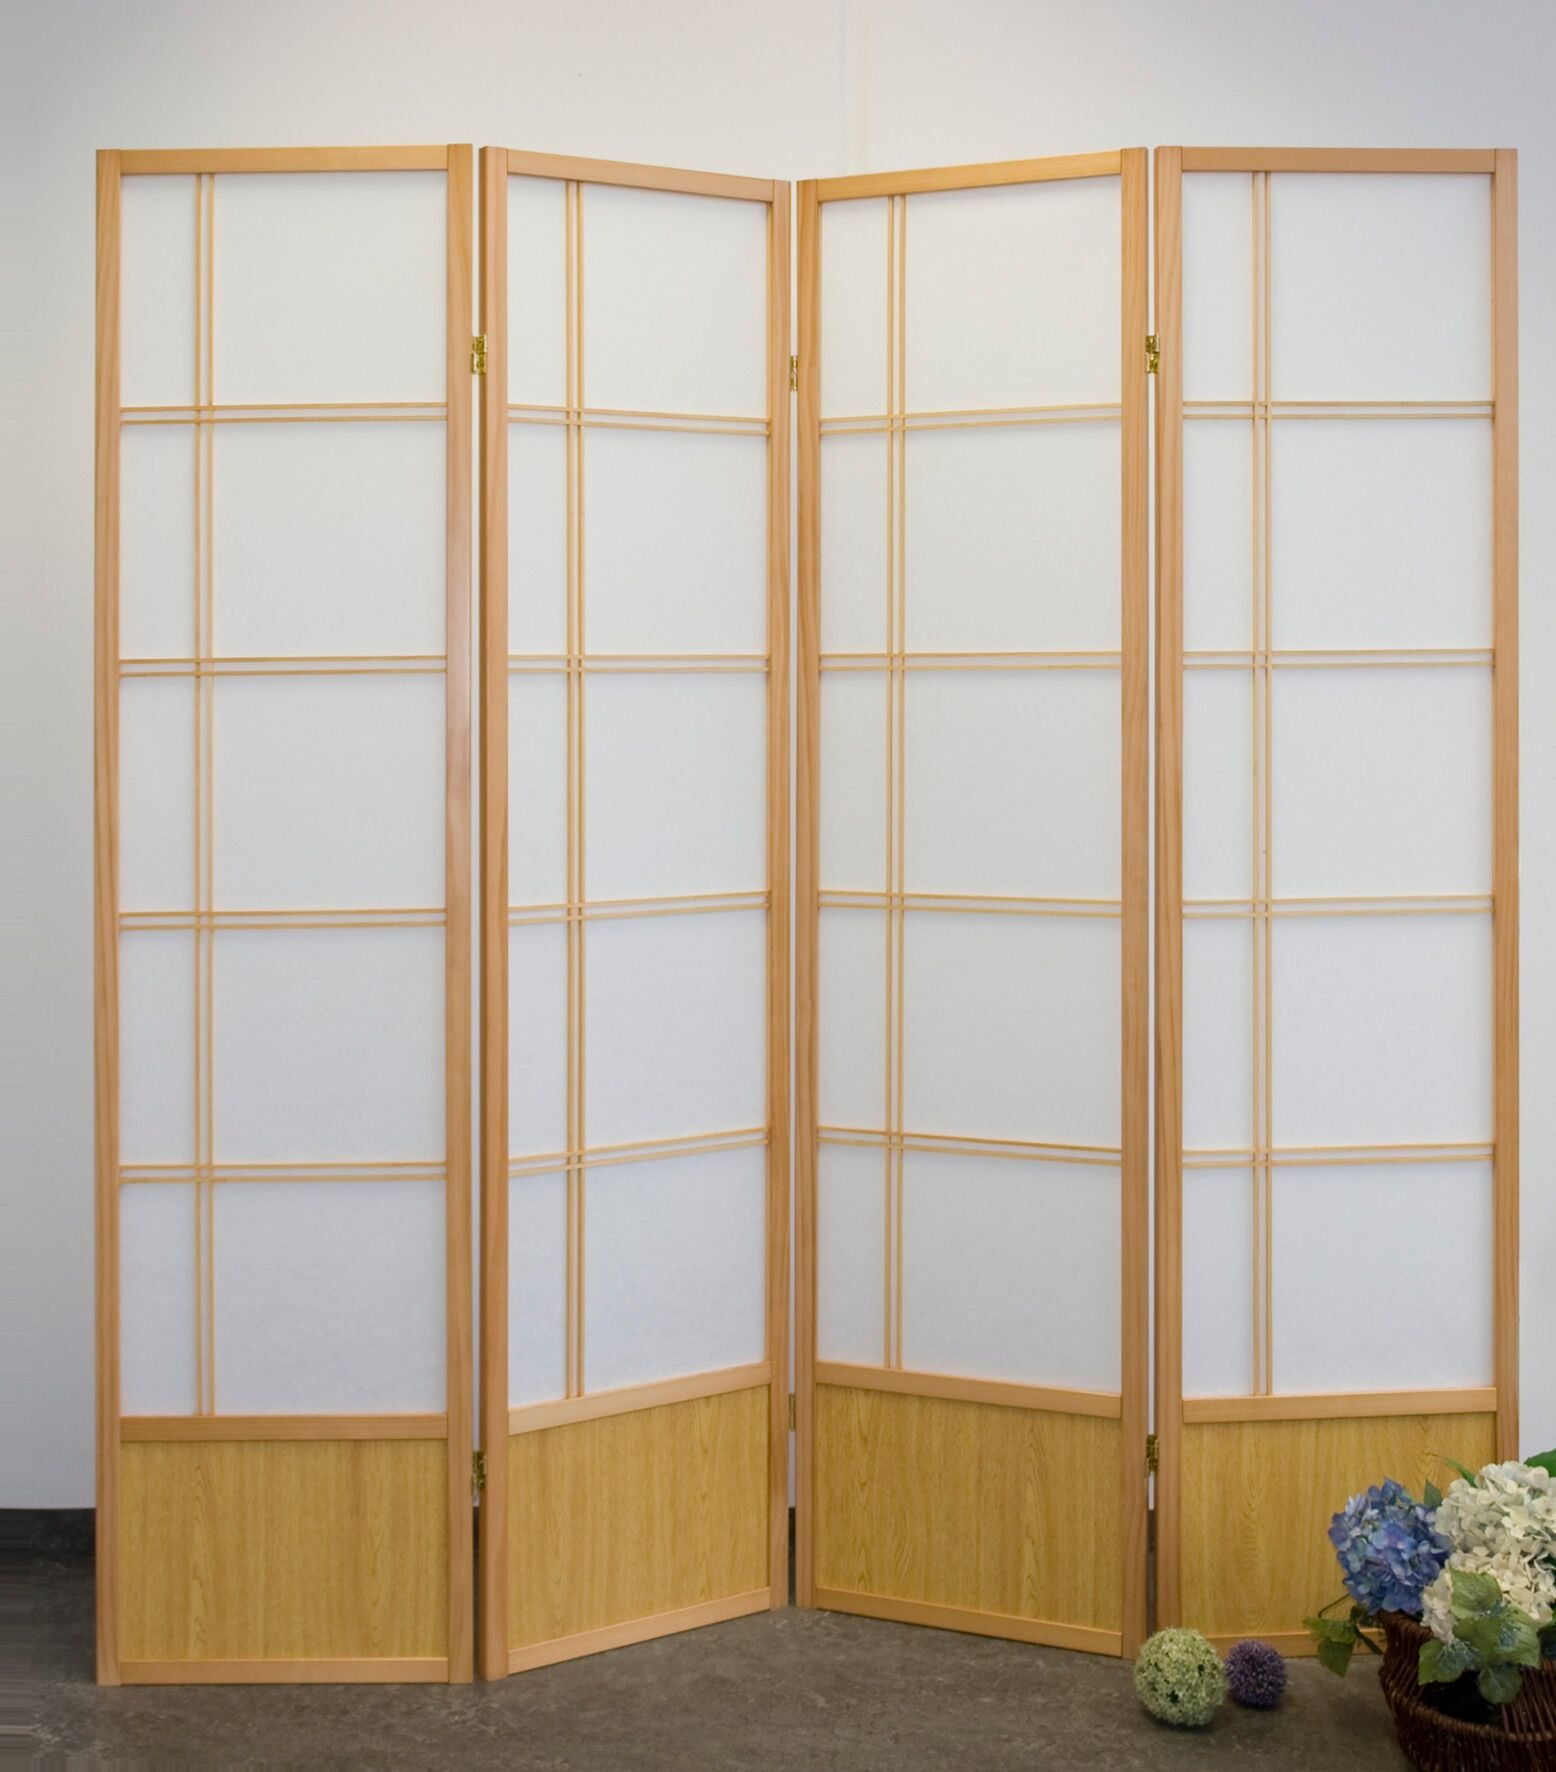 Good Natural 4 Panel Akio Room Divider Screen For Sale Room Dividers UK